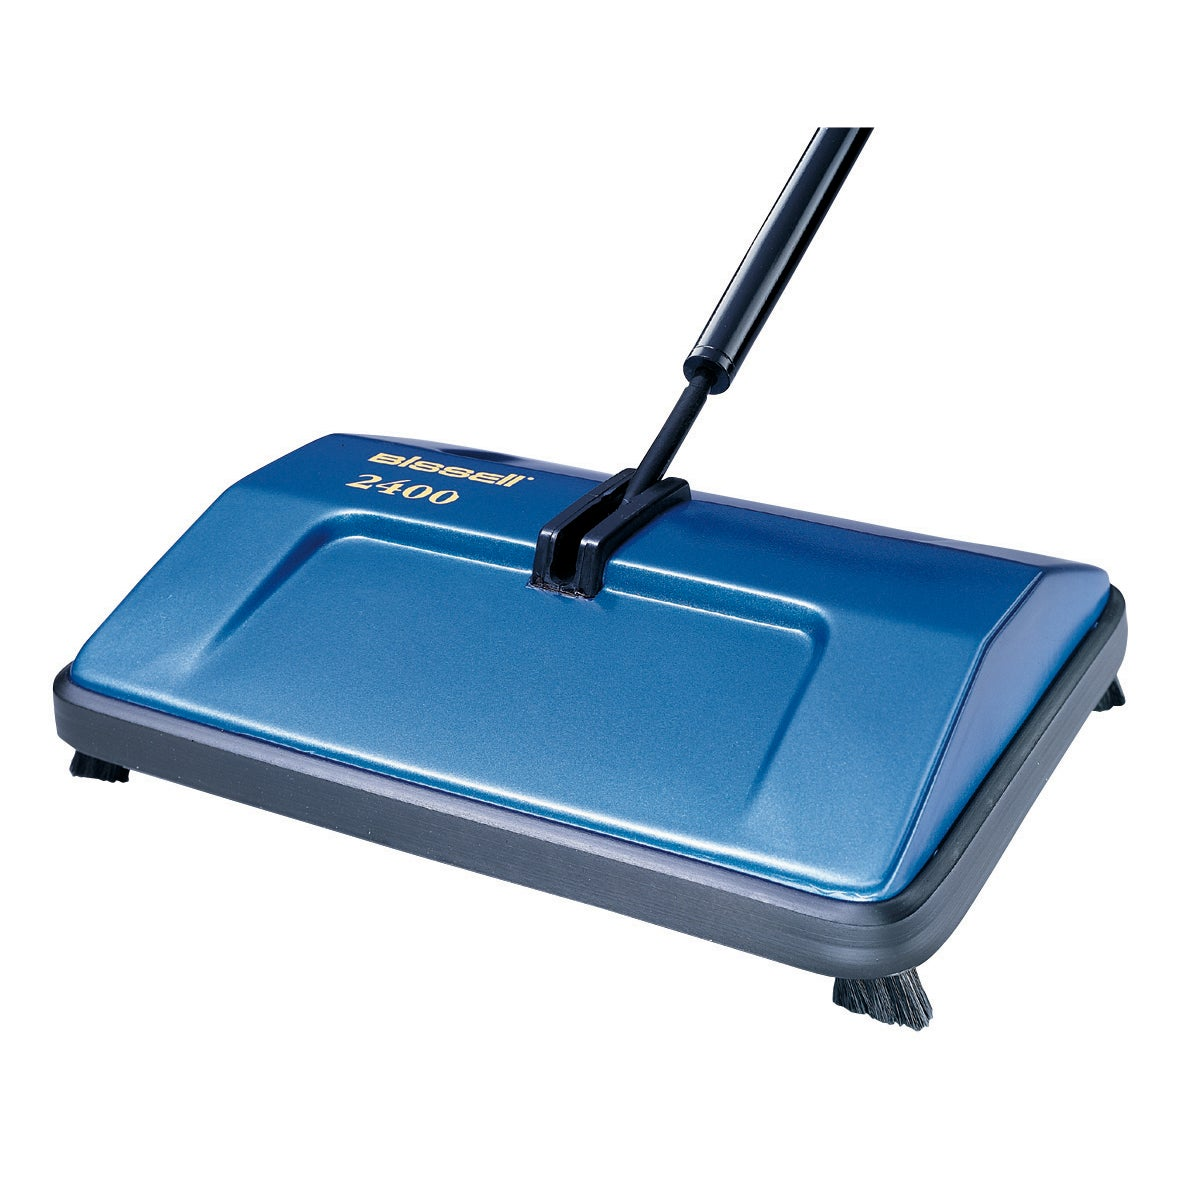 CORDLESS SWEEPER - 2402 by Bissell Homecare Int